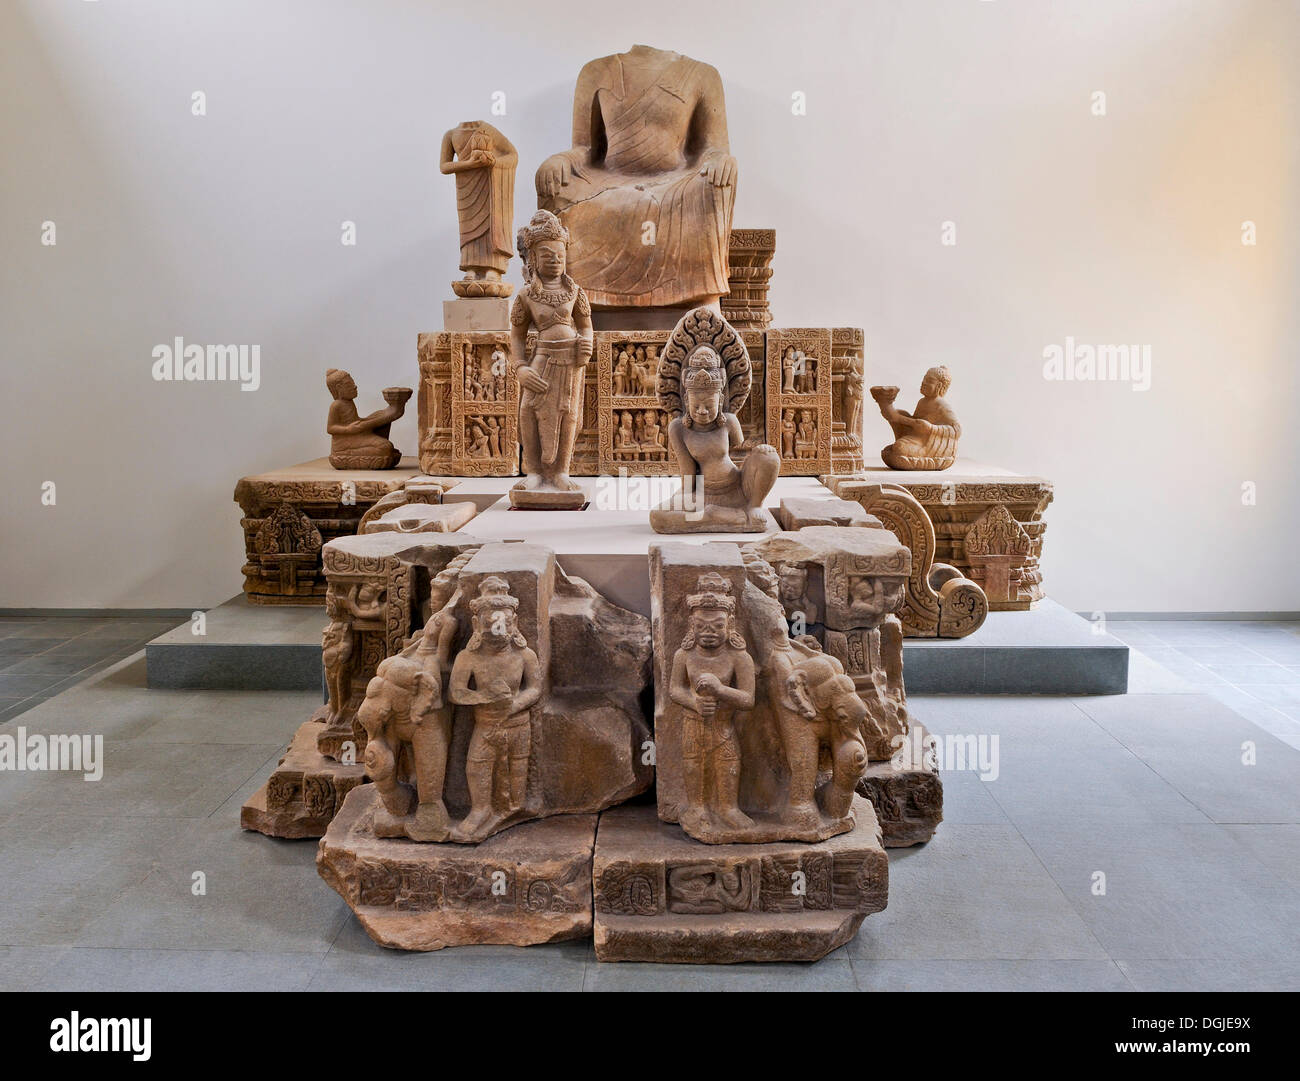 Collection of remains of the Buddhist center of Dong Duong, Cham Museum, Da Nang, Vietnam, Southeast Asia - Stock Image